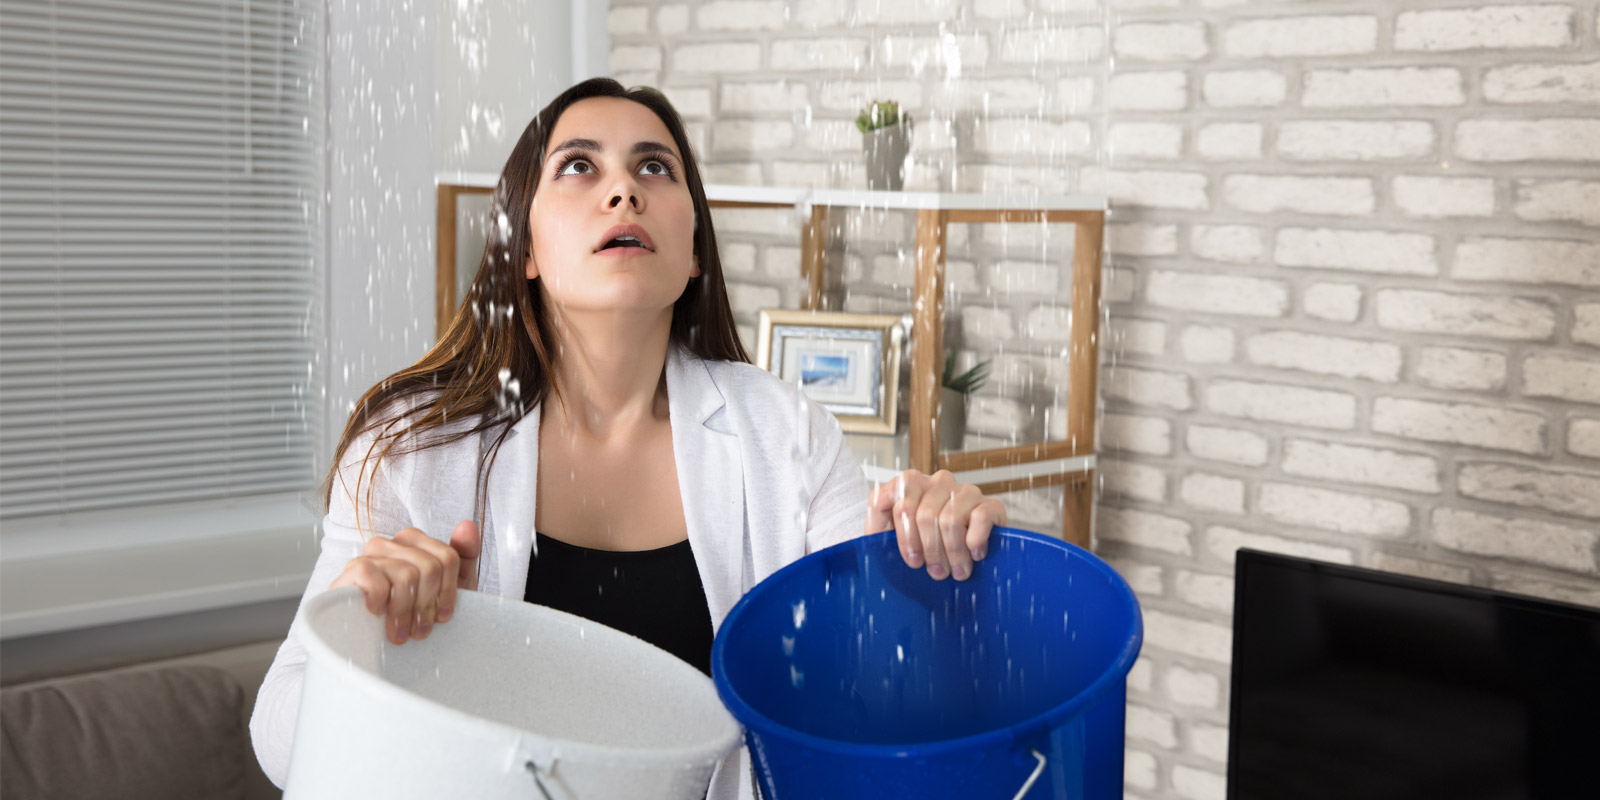 a woman holding two buckets under a burst pipe while she waits for a water mitigation company to arrive